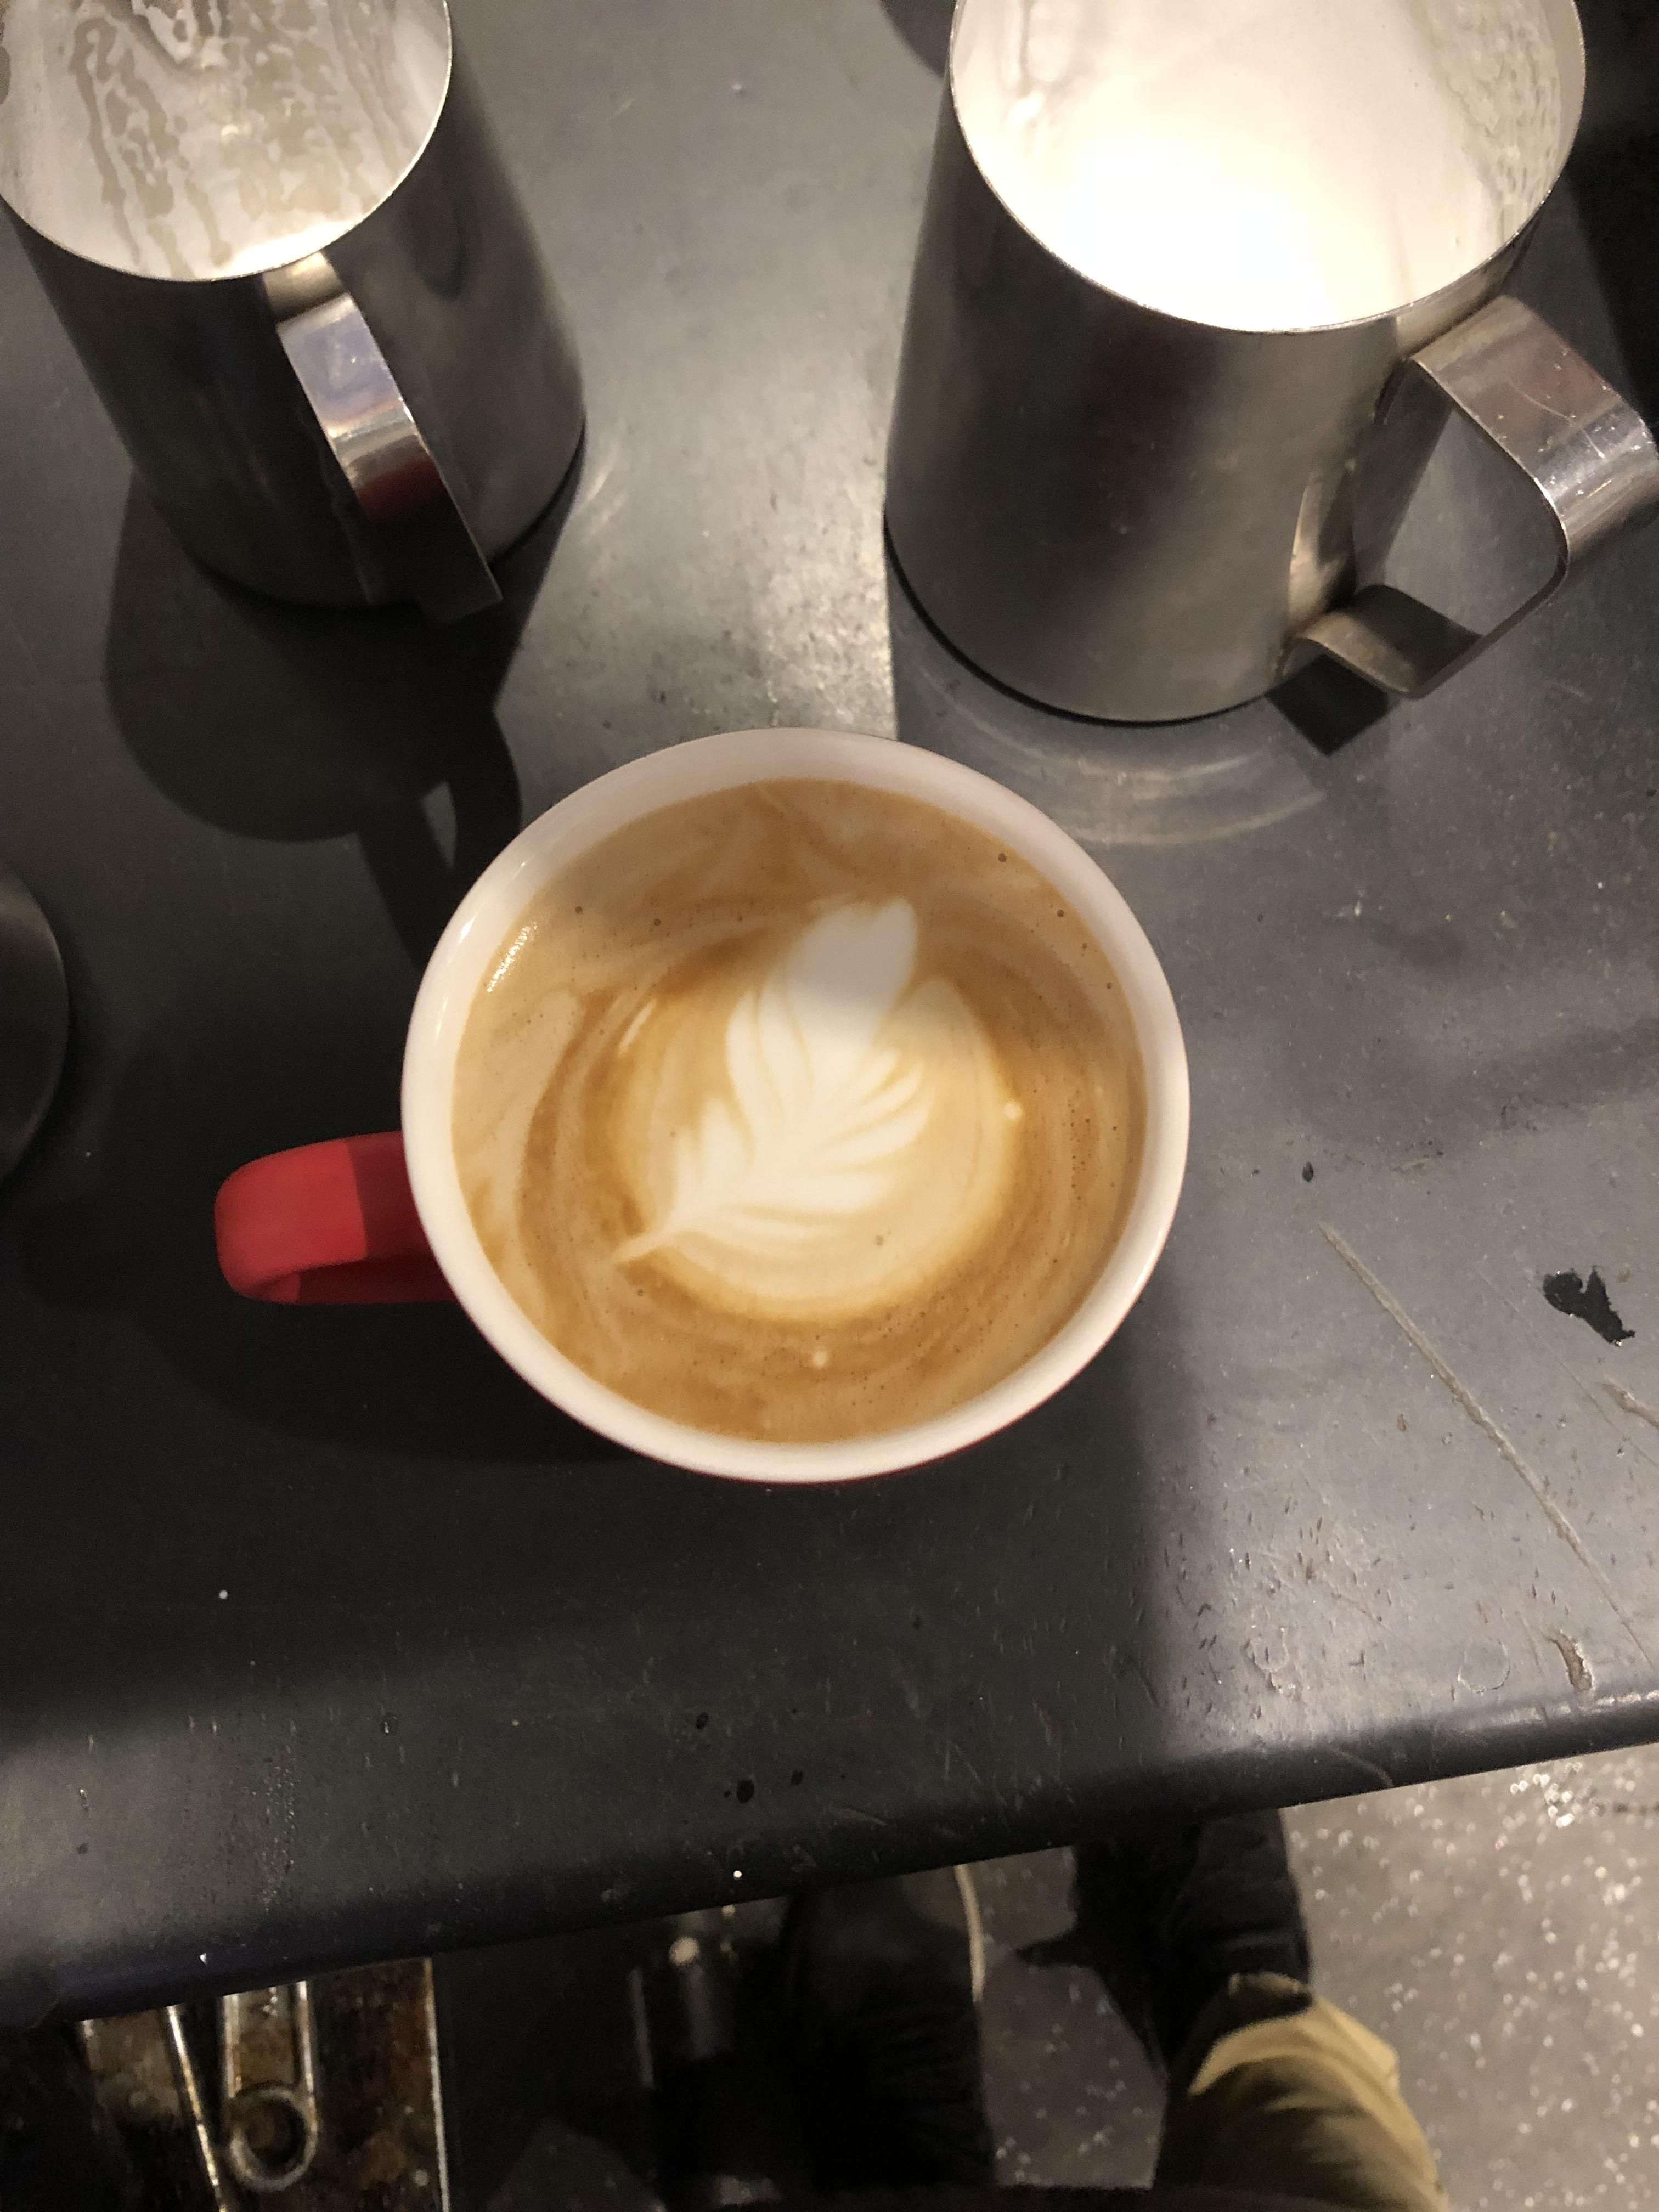 Poured My First Feather Yesterday Coffee Cafe Espresso Photography Coffeeaddict Yummy Barista Coffee Addict Best Coffee Grinder Best Coffee